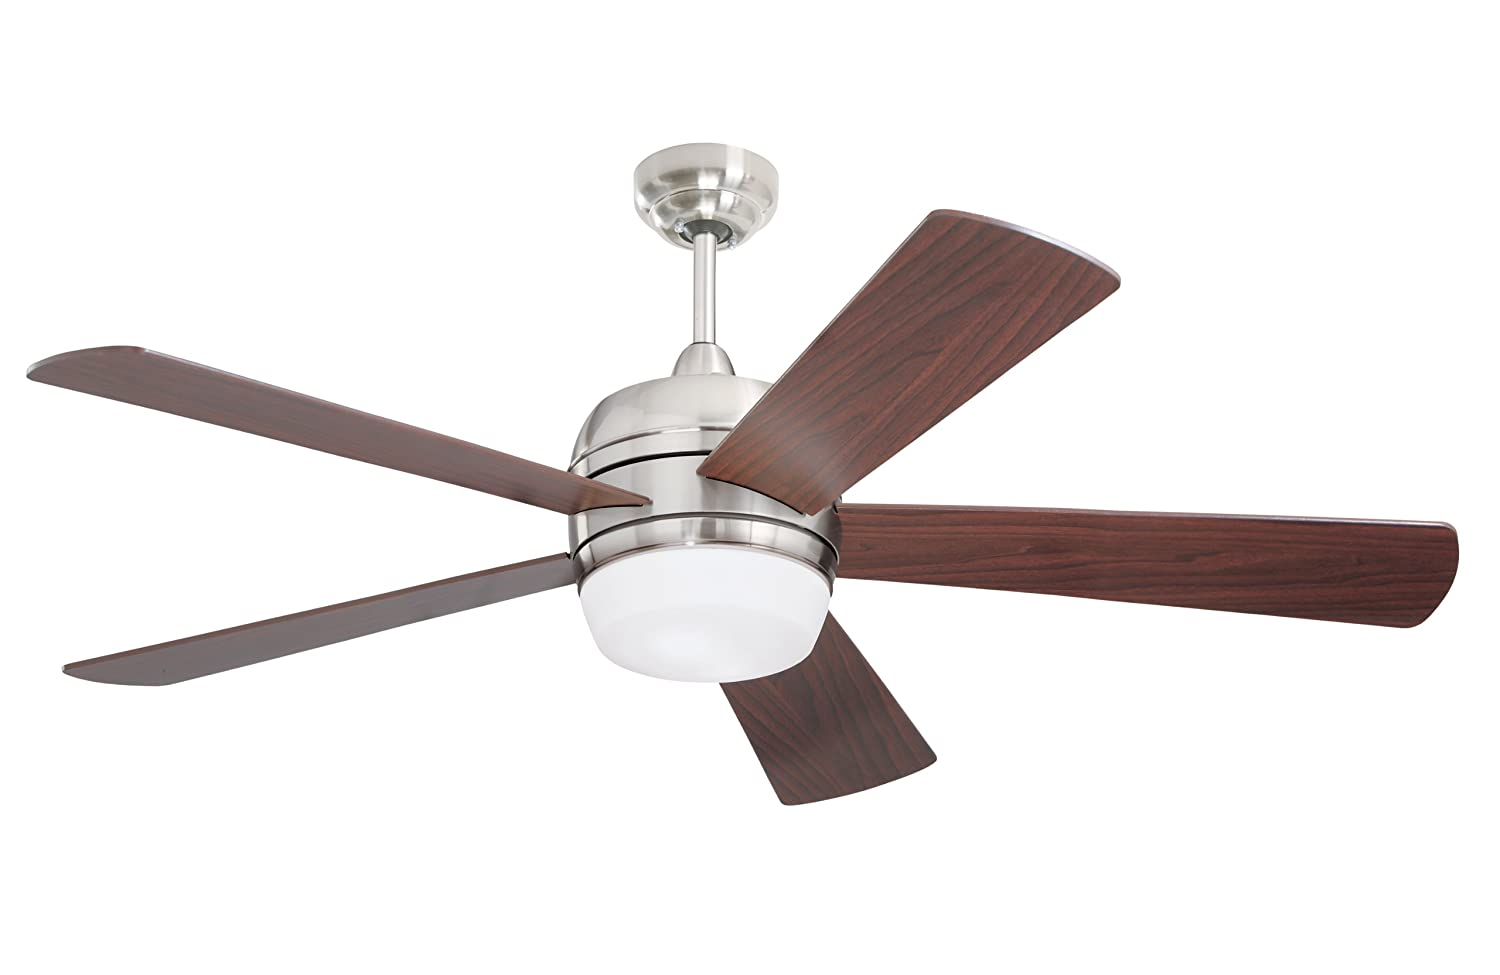 emerson ceiling fans cf930bs atomical 52 inch modern indoor ceiling fan with light and remote, brushed steel finish Hunter Fan Motor Wiring Diagram